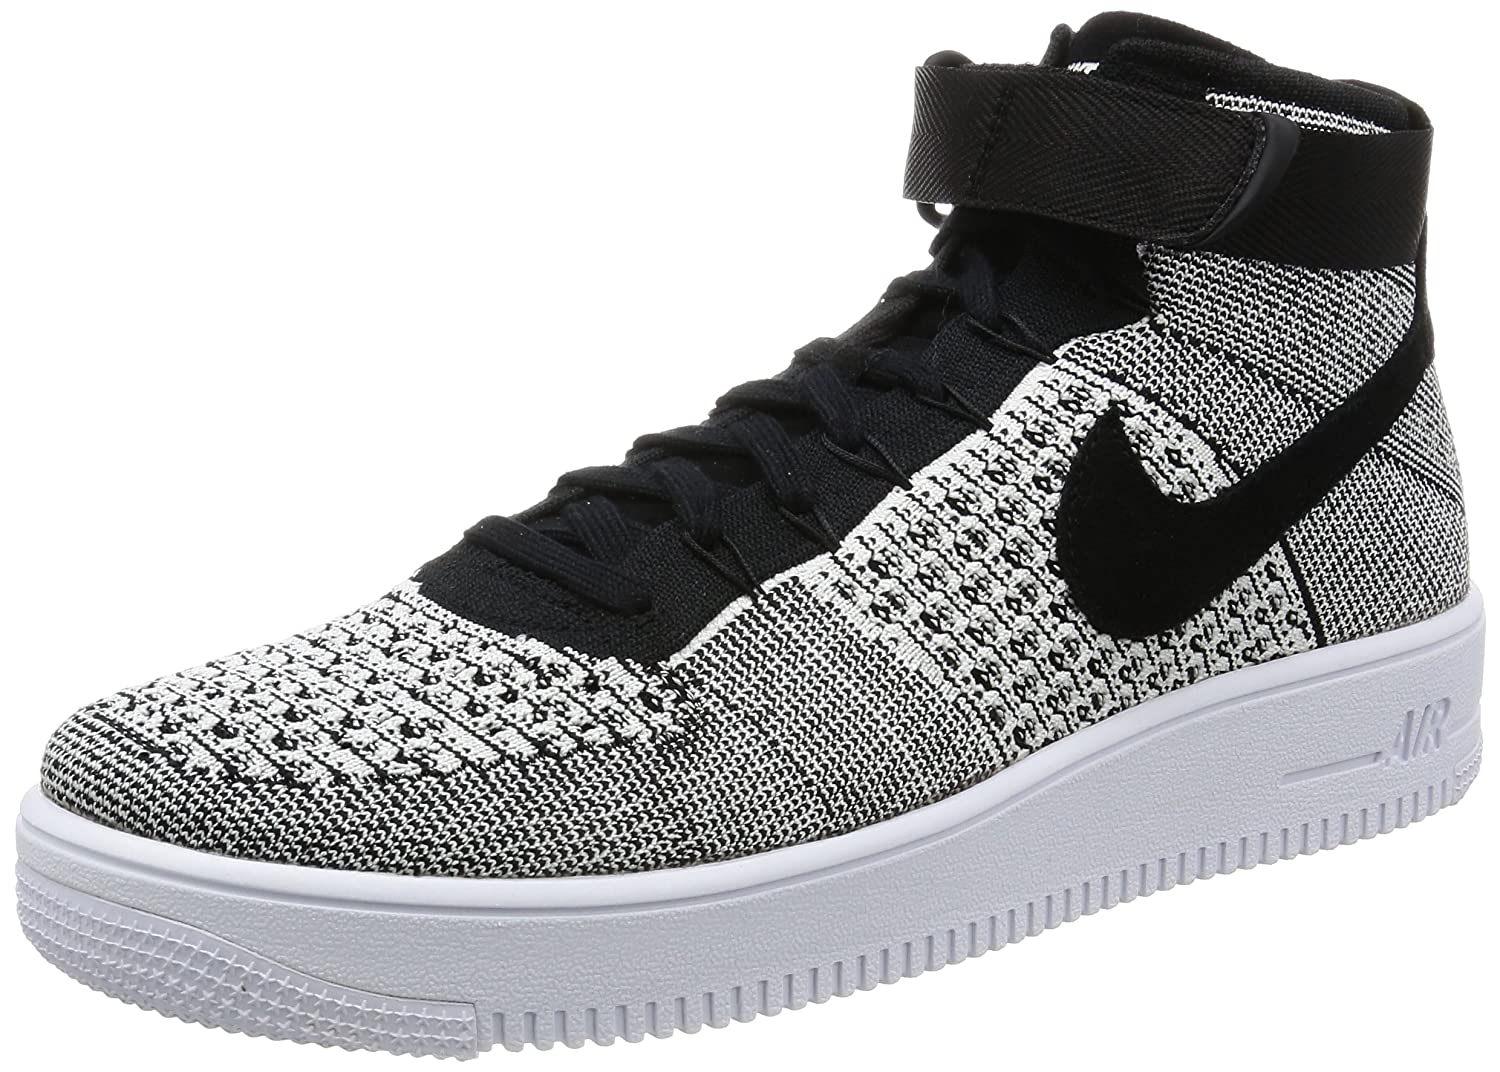 reputable site 94f97 a4c87 Nike Af1 Ultra Flyknit Mid Mens